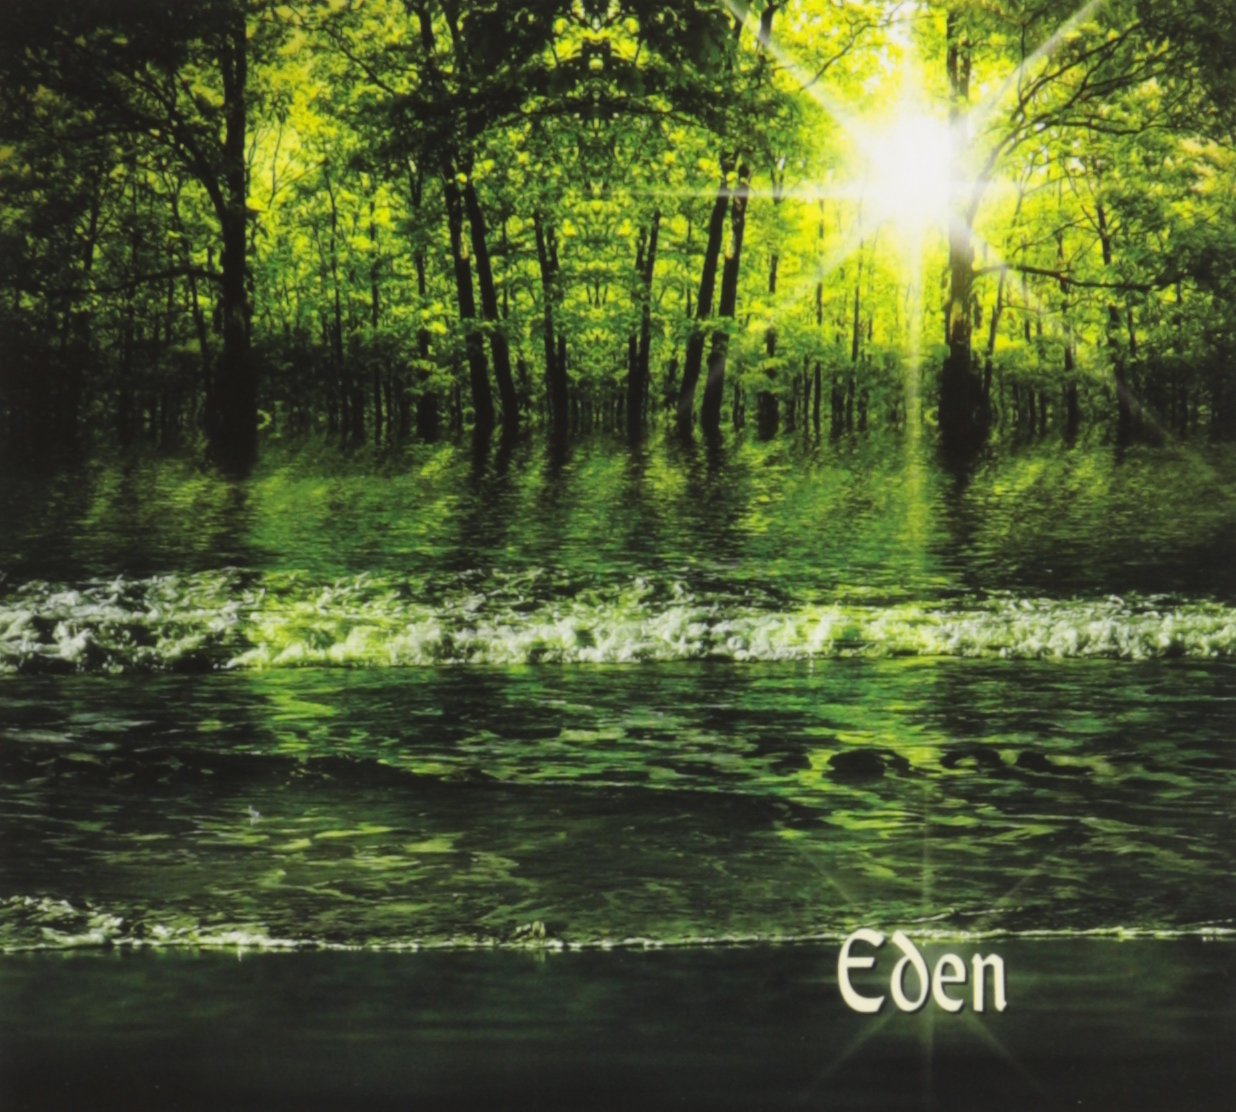 Eden CD Front Cover - Jennifer Parsignault